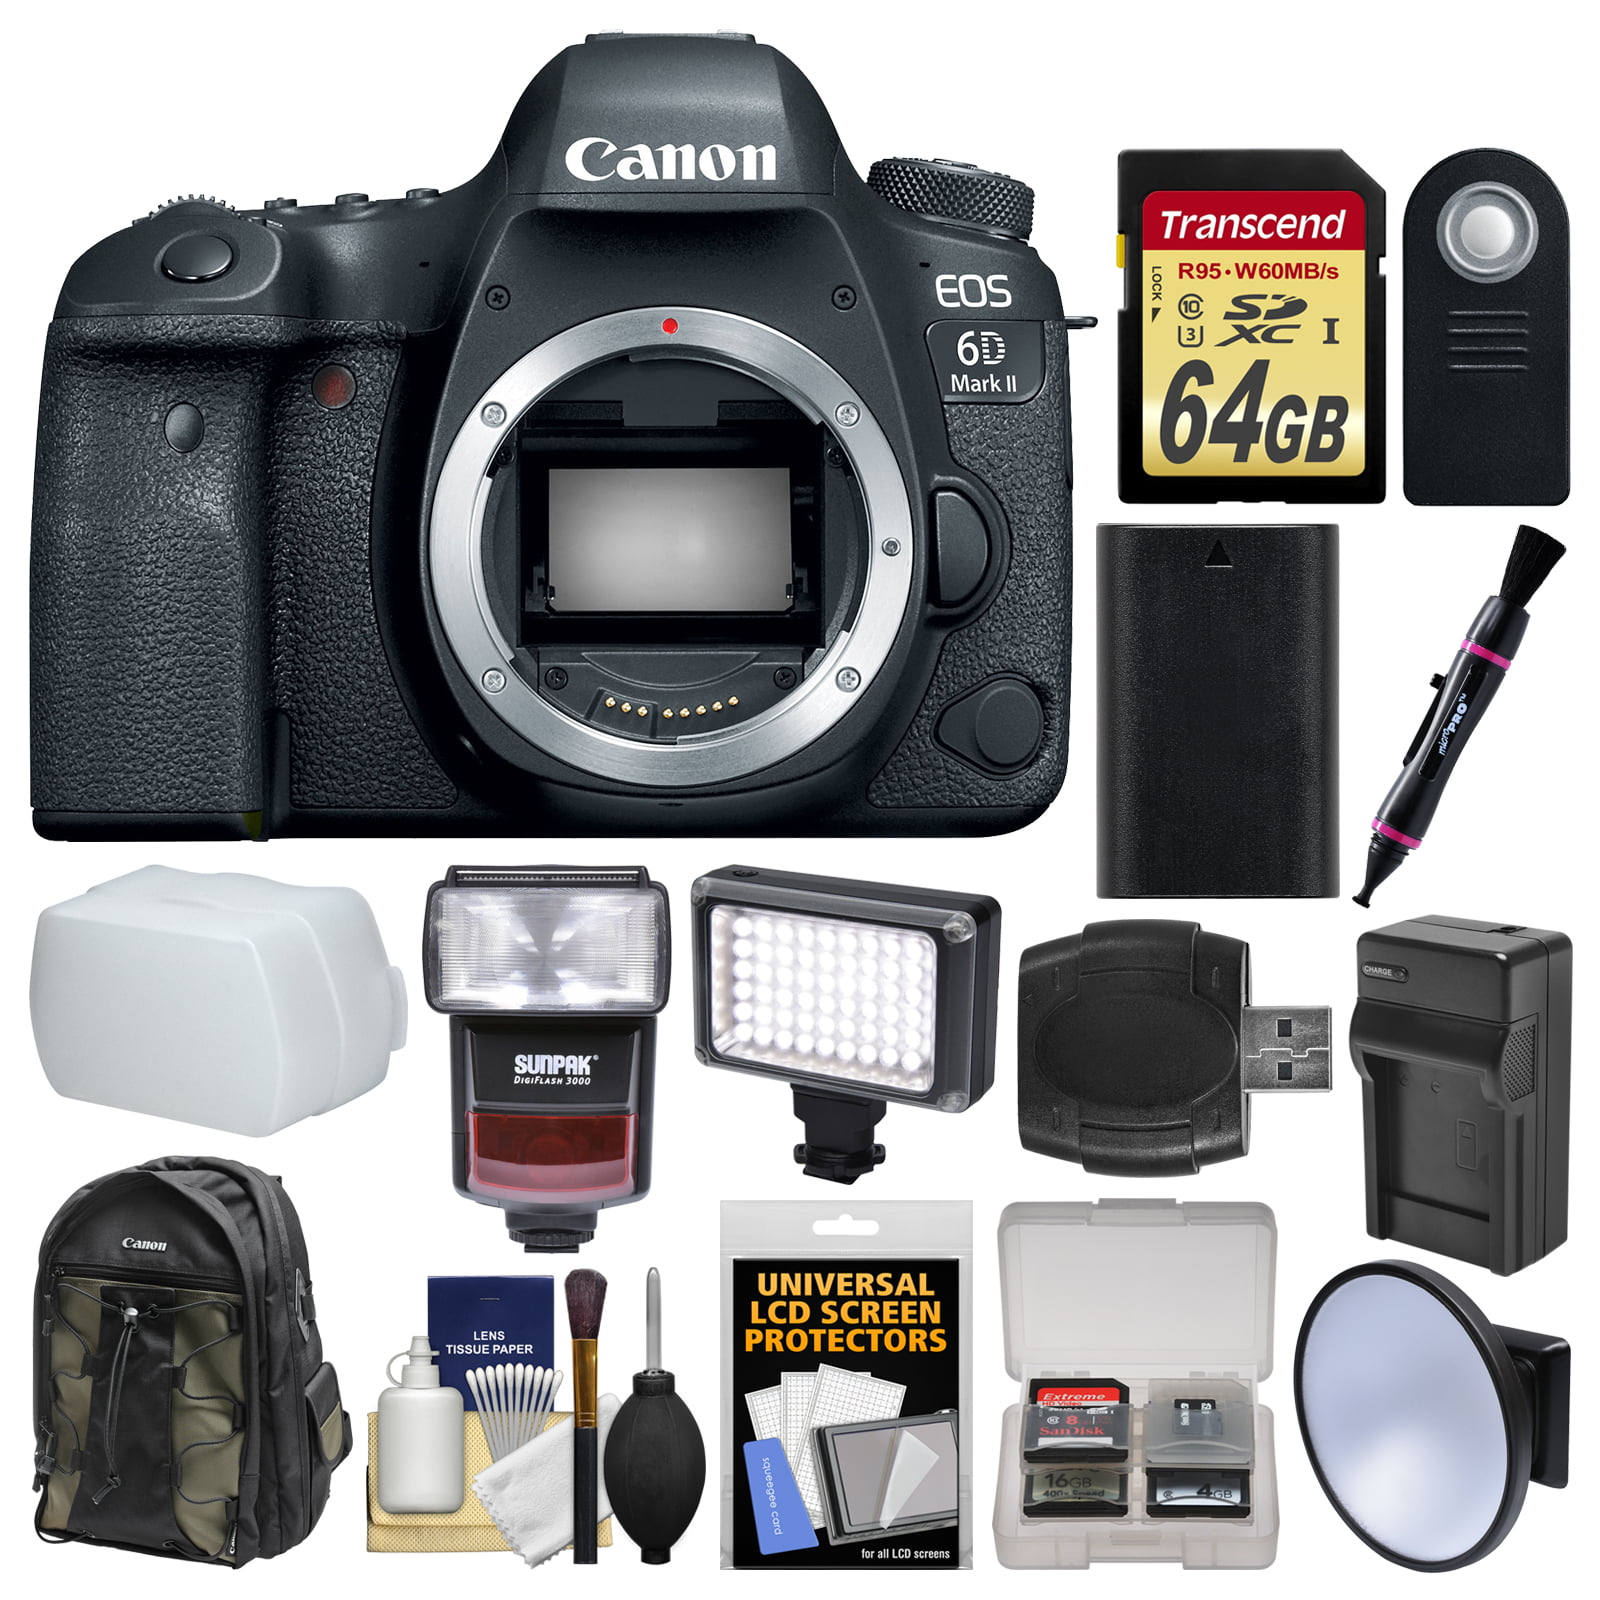 Canon EOS 6D Mark II Wi-Fi Digital SLR Camera Body with 64GB Card + Backpack + Flash + Video Light + Battery & Charger +... by Canon